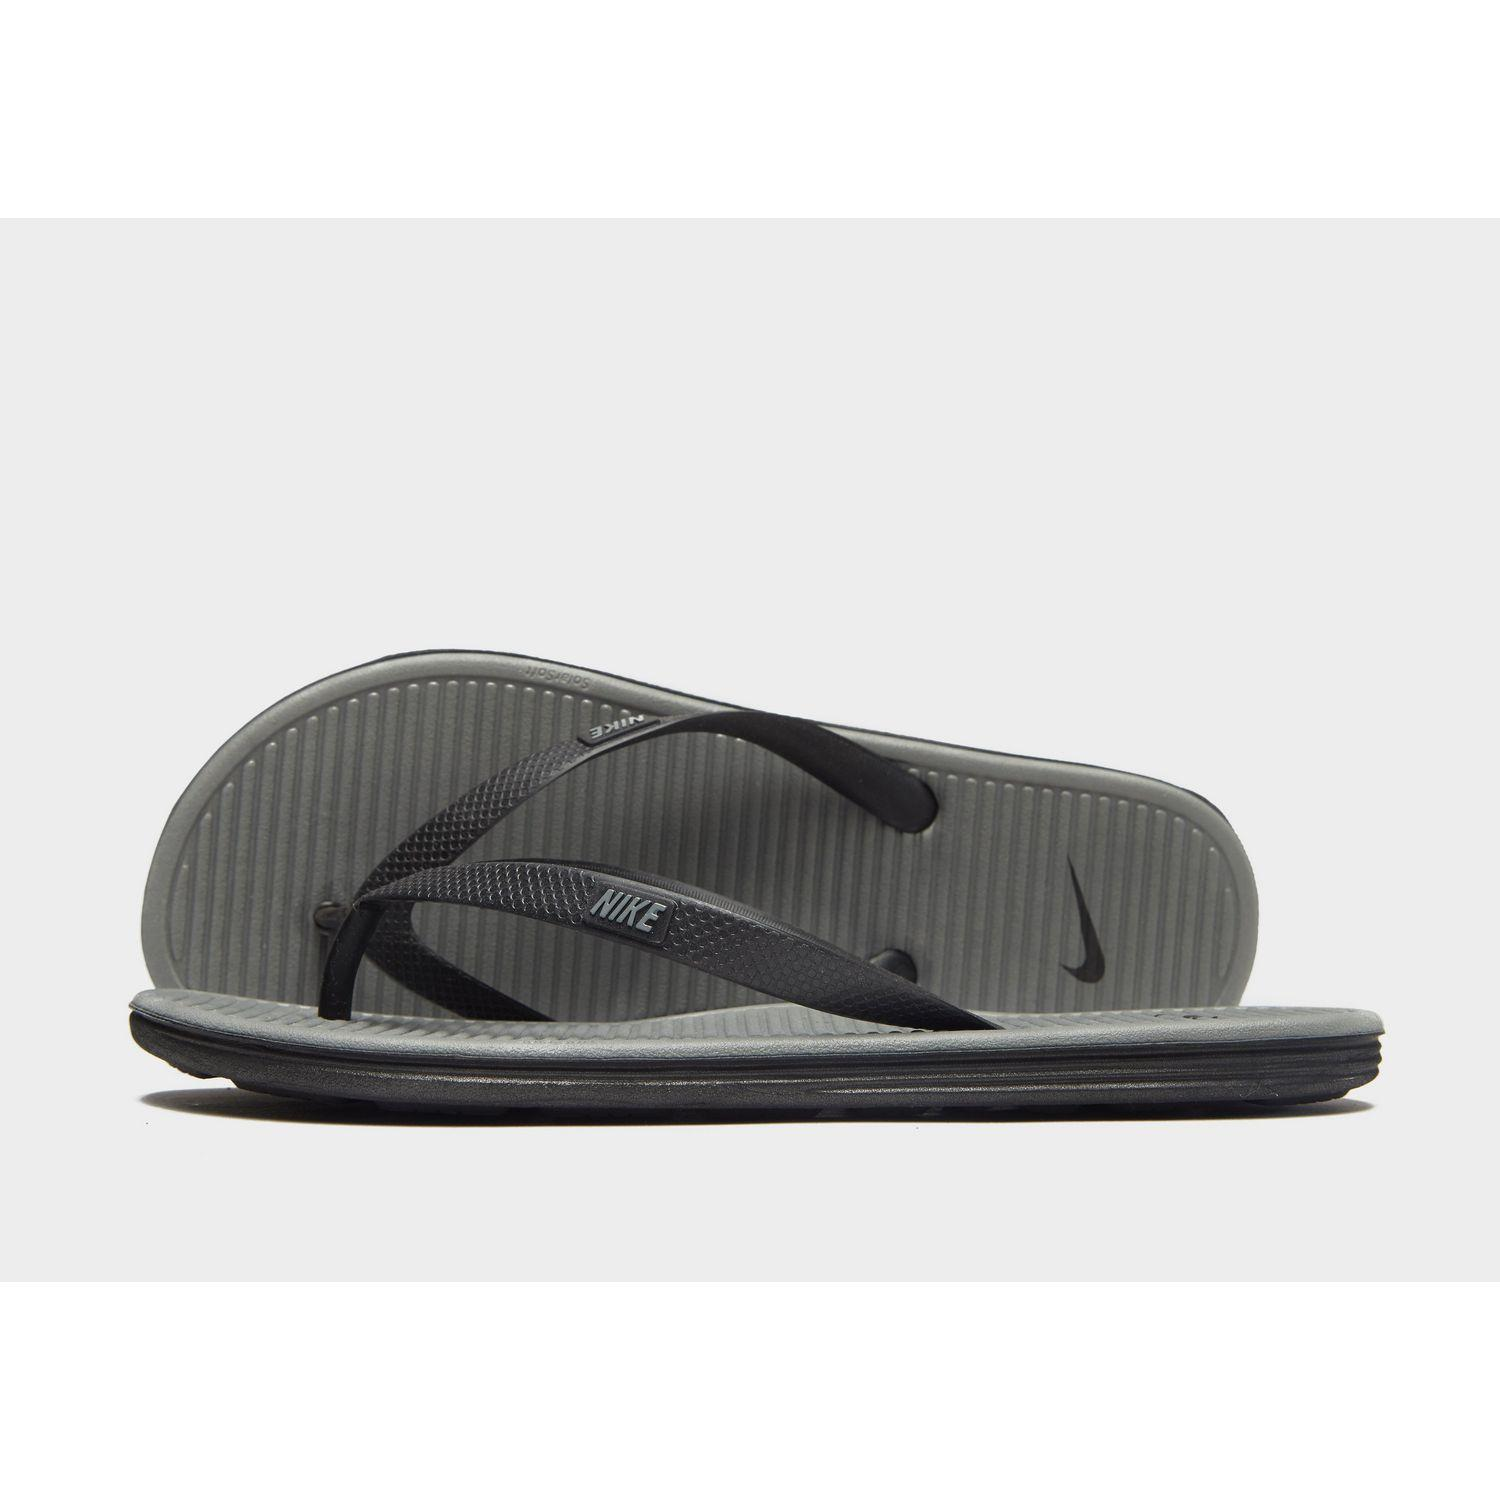 dac37907e81 Lyst - Nike Solarsoft Ii Flip Flops in Gray for Men